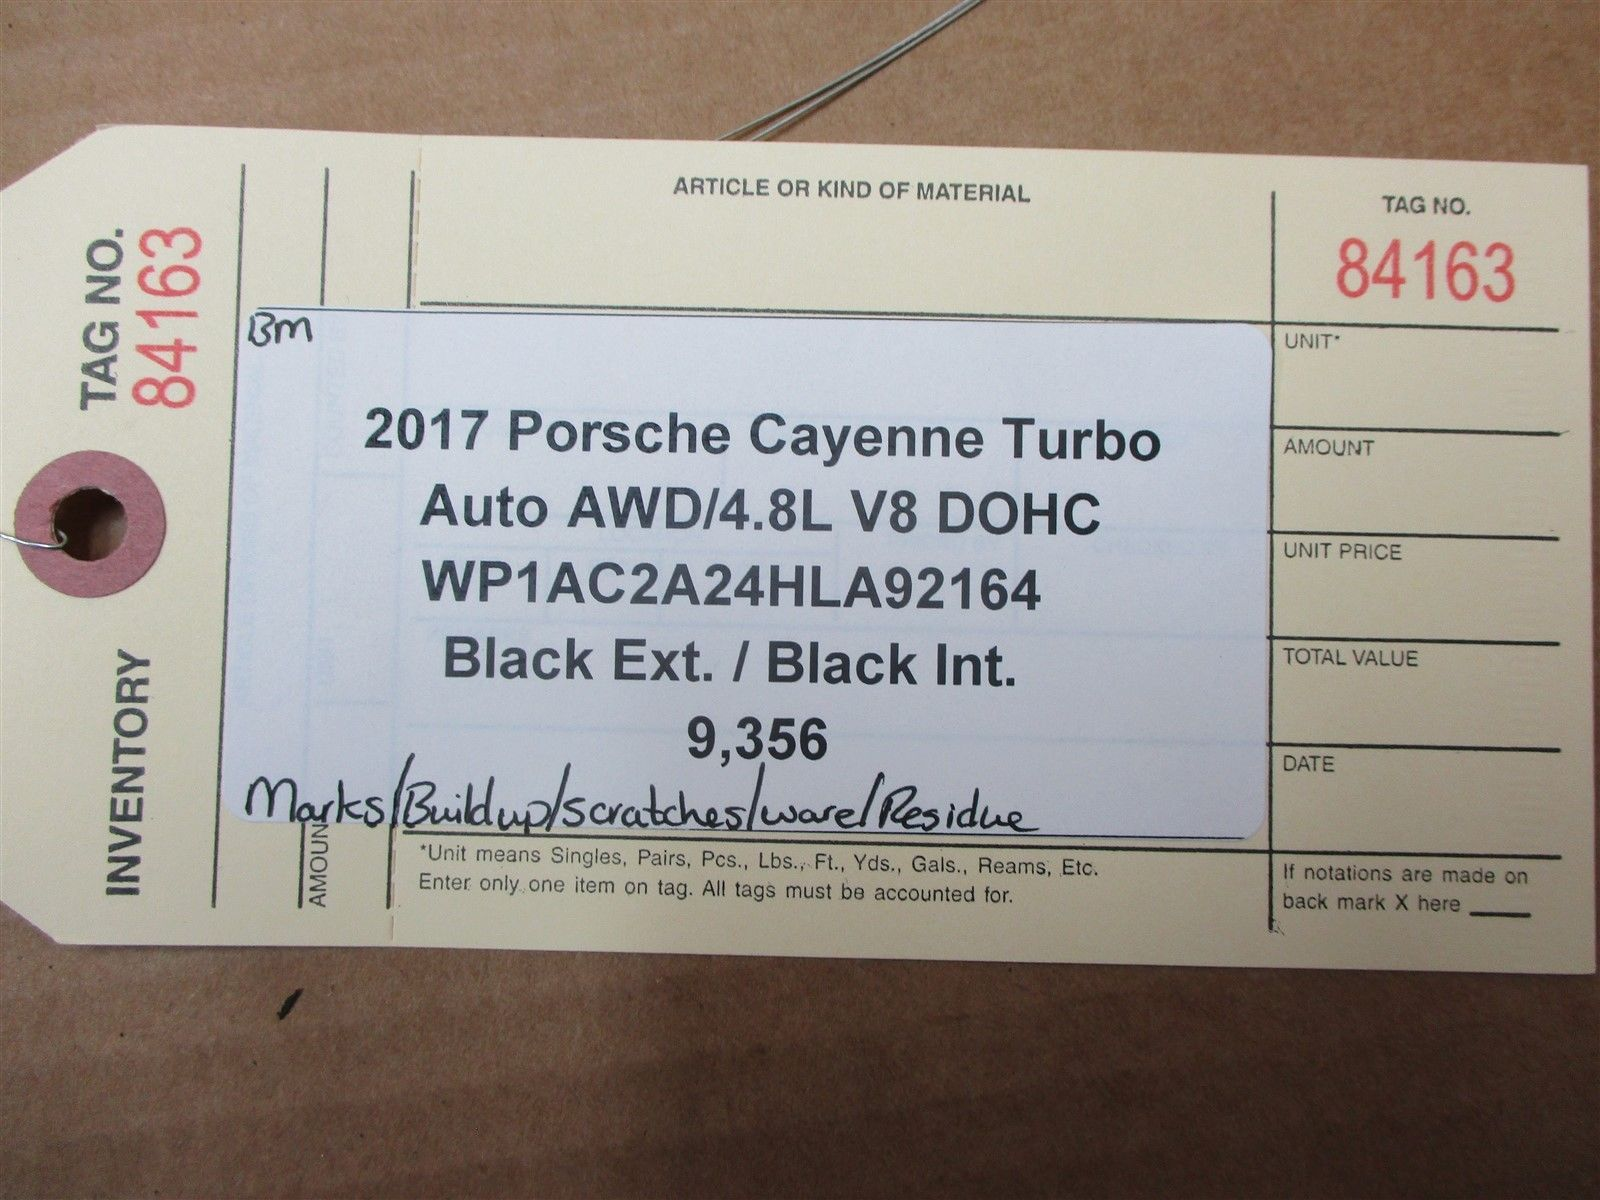 17 Cayenne Turbo AWD Porsche 958 6 BOOKLETS 1 OWNER'S MANUAL Black CASE 9,356